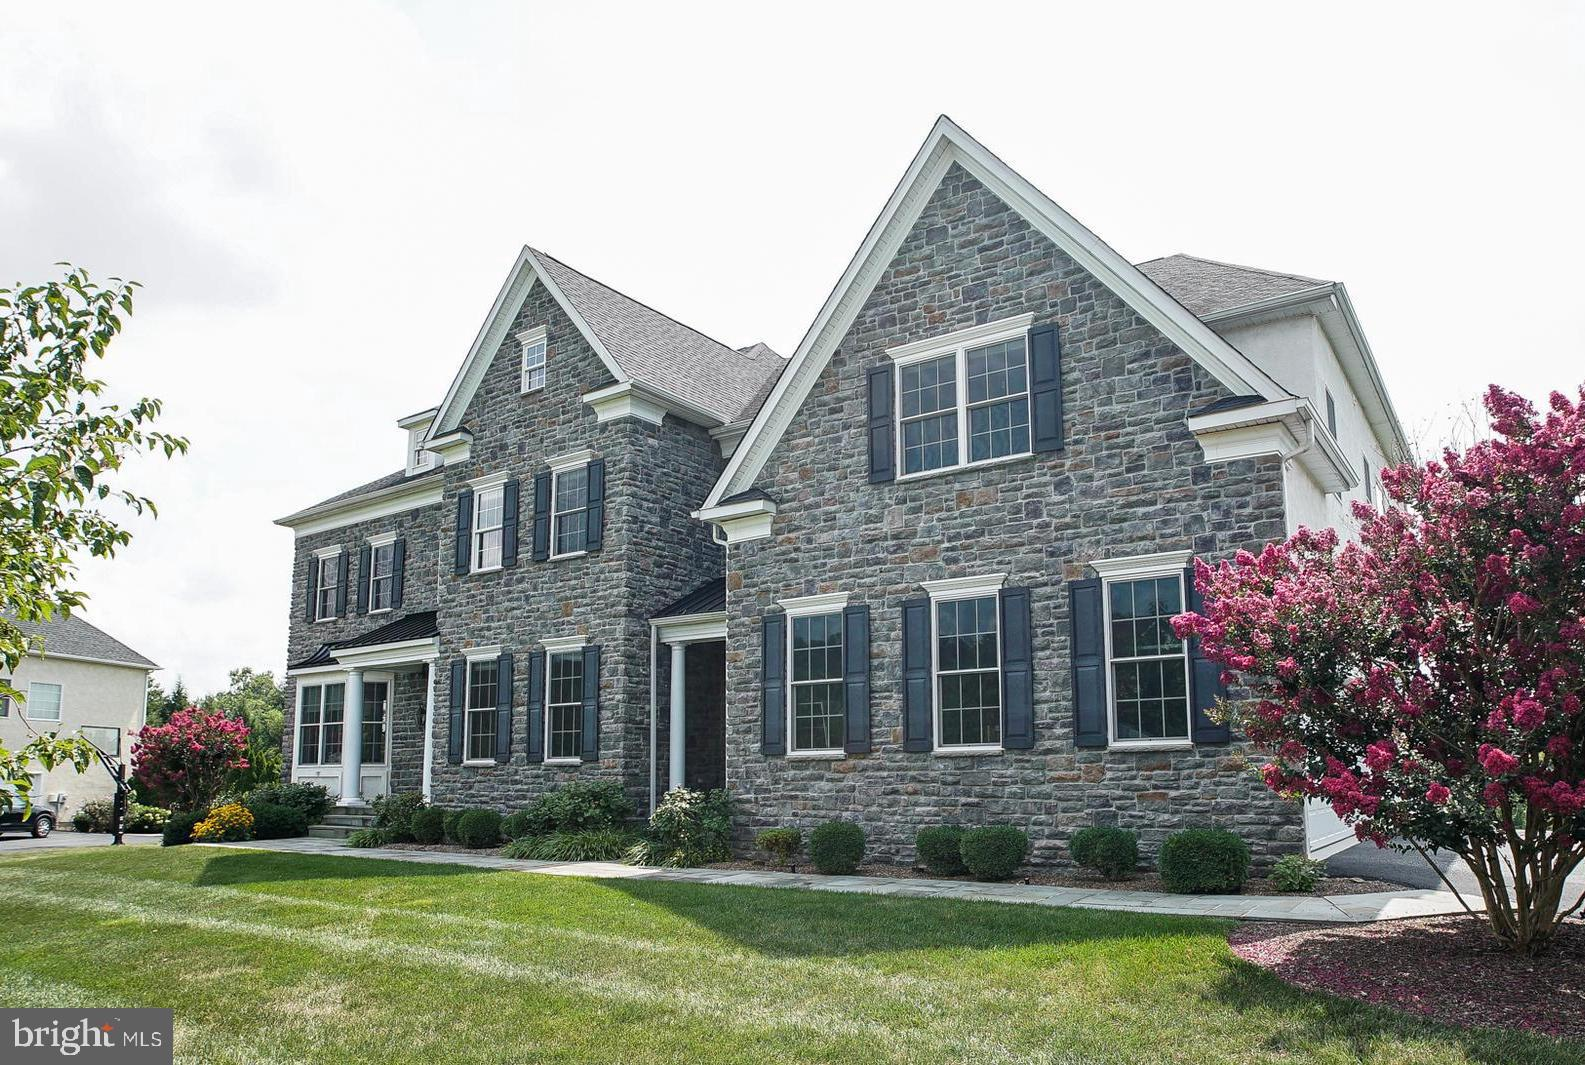 24 MEREDITH ROAD, PHOENIXVILLE, PA 19460